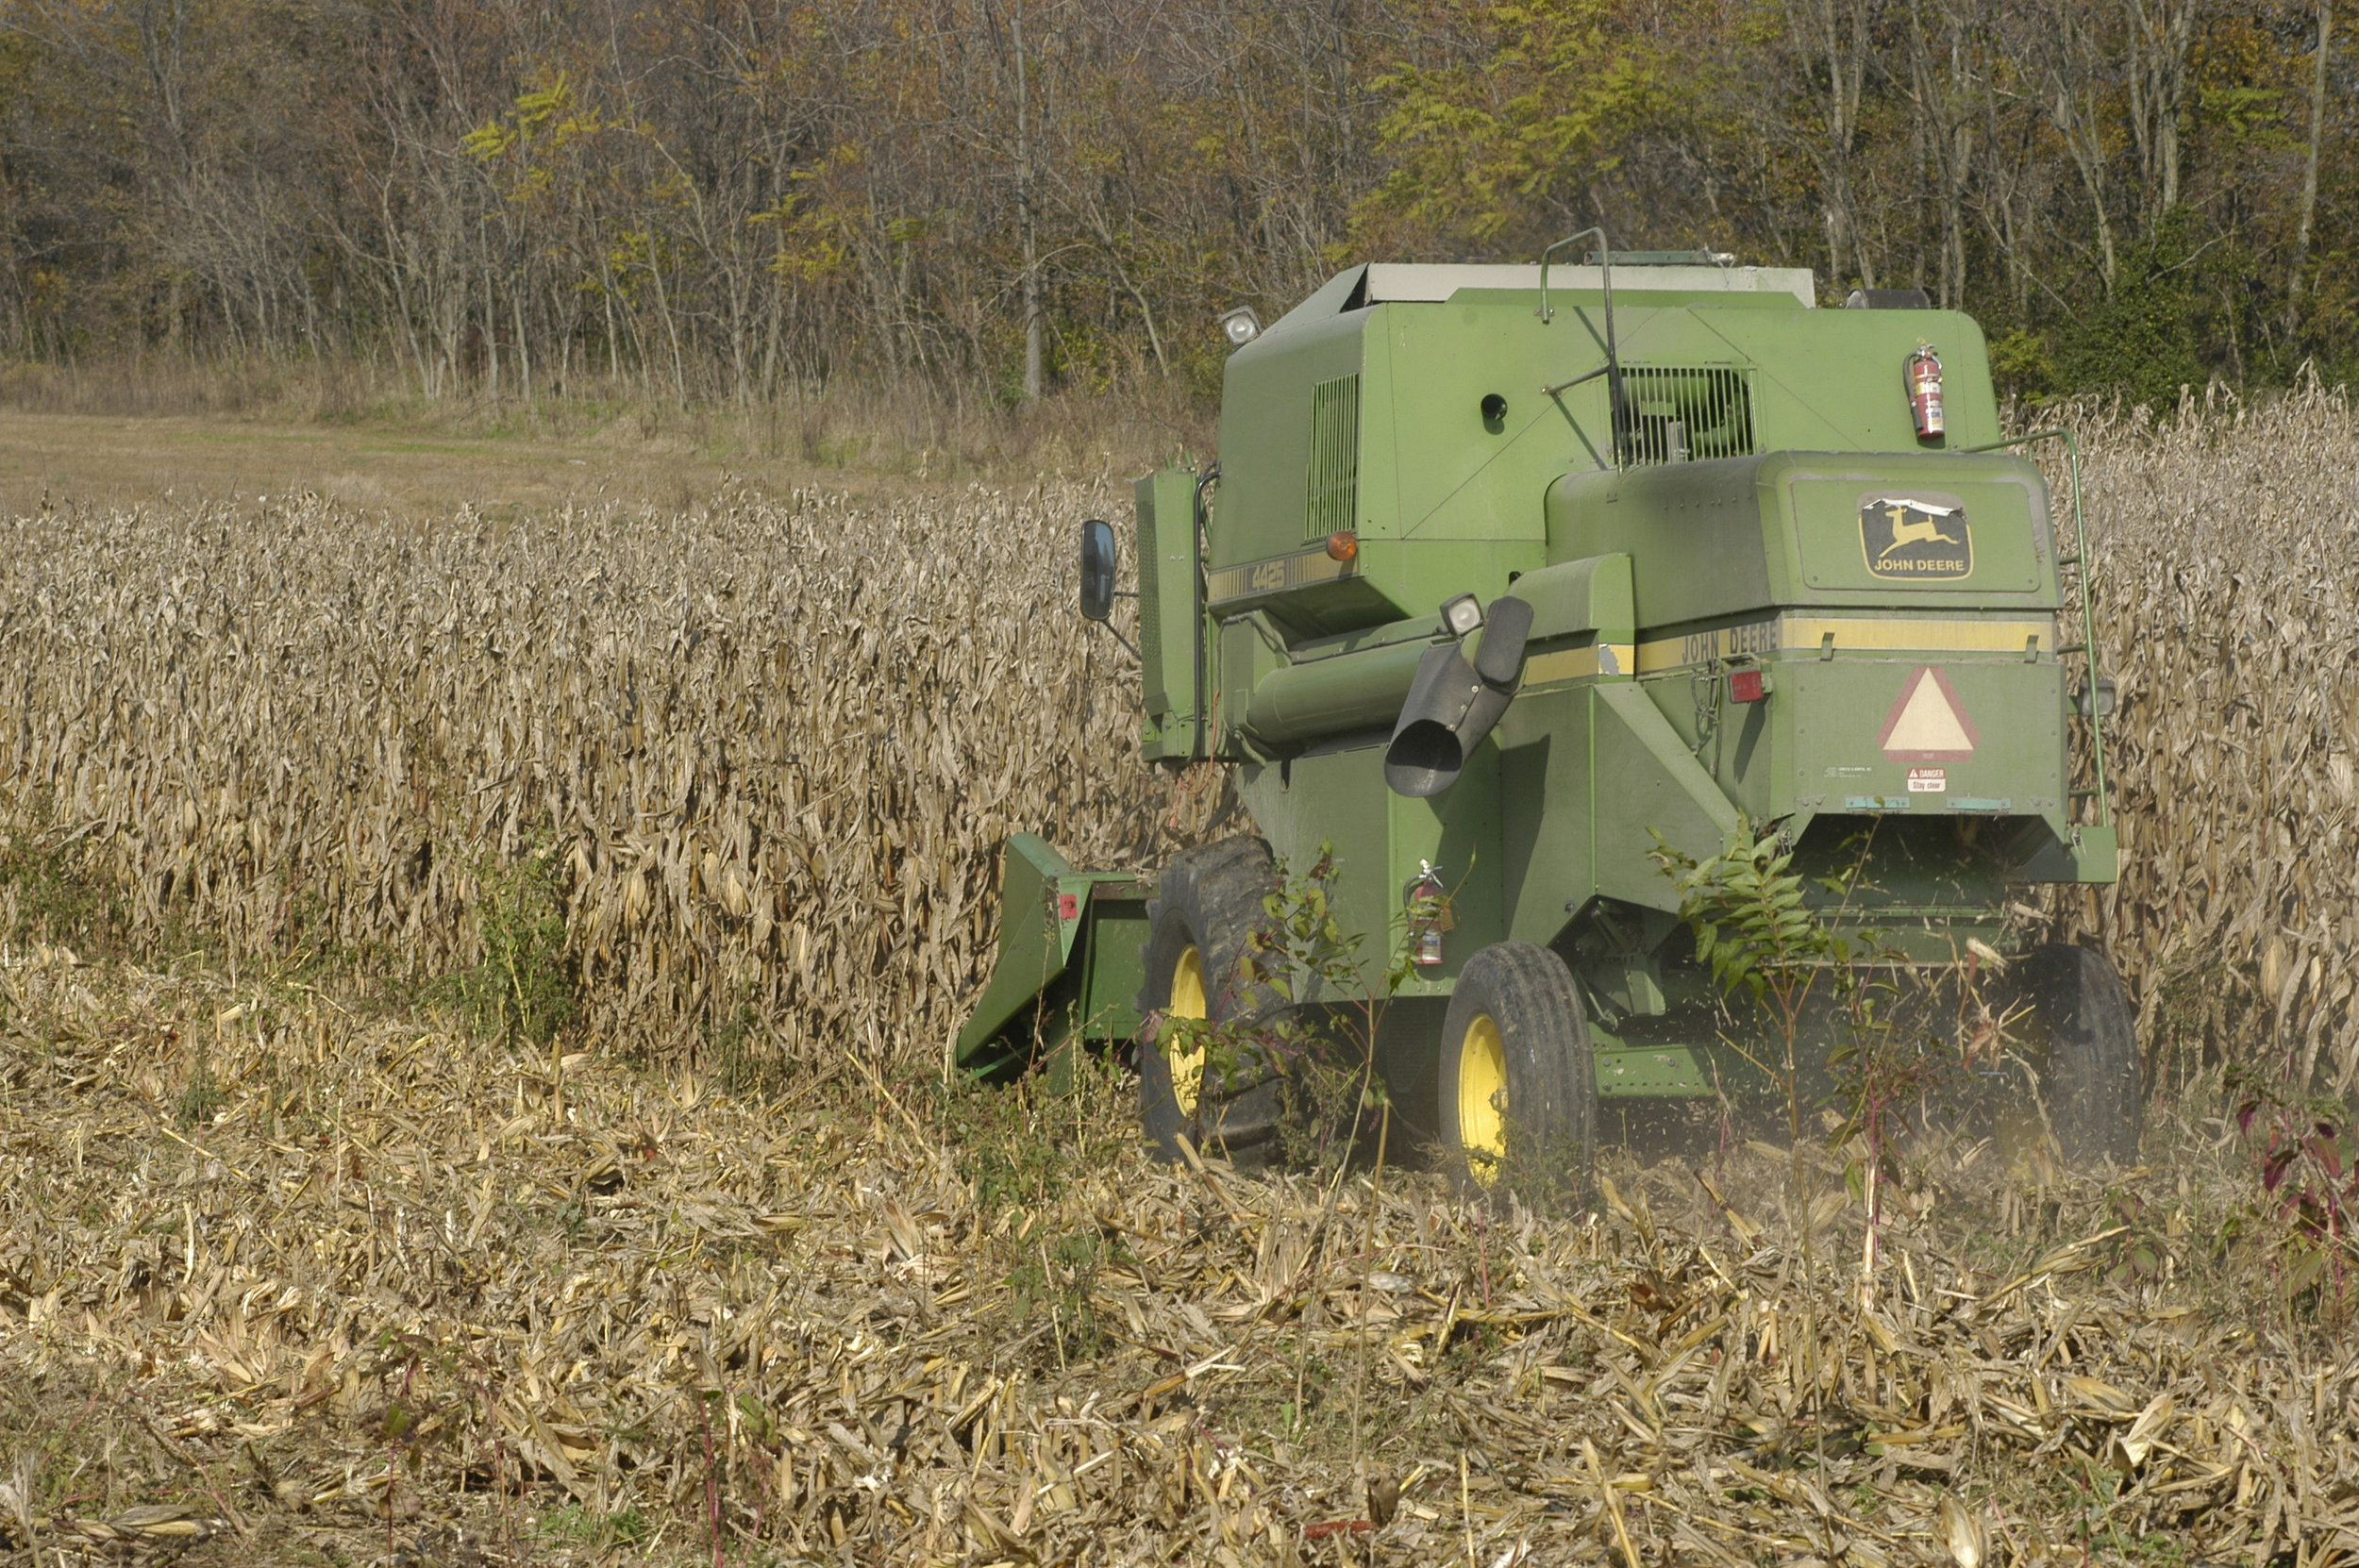 Corn harvest with combine cutting corn in the field.  Image by Edwin Remsberg